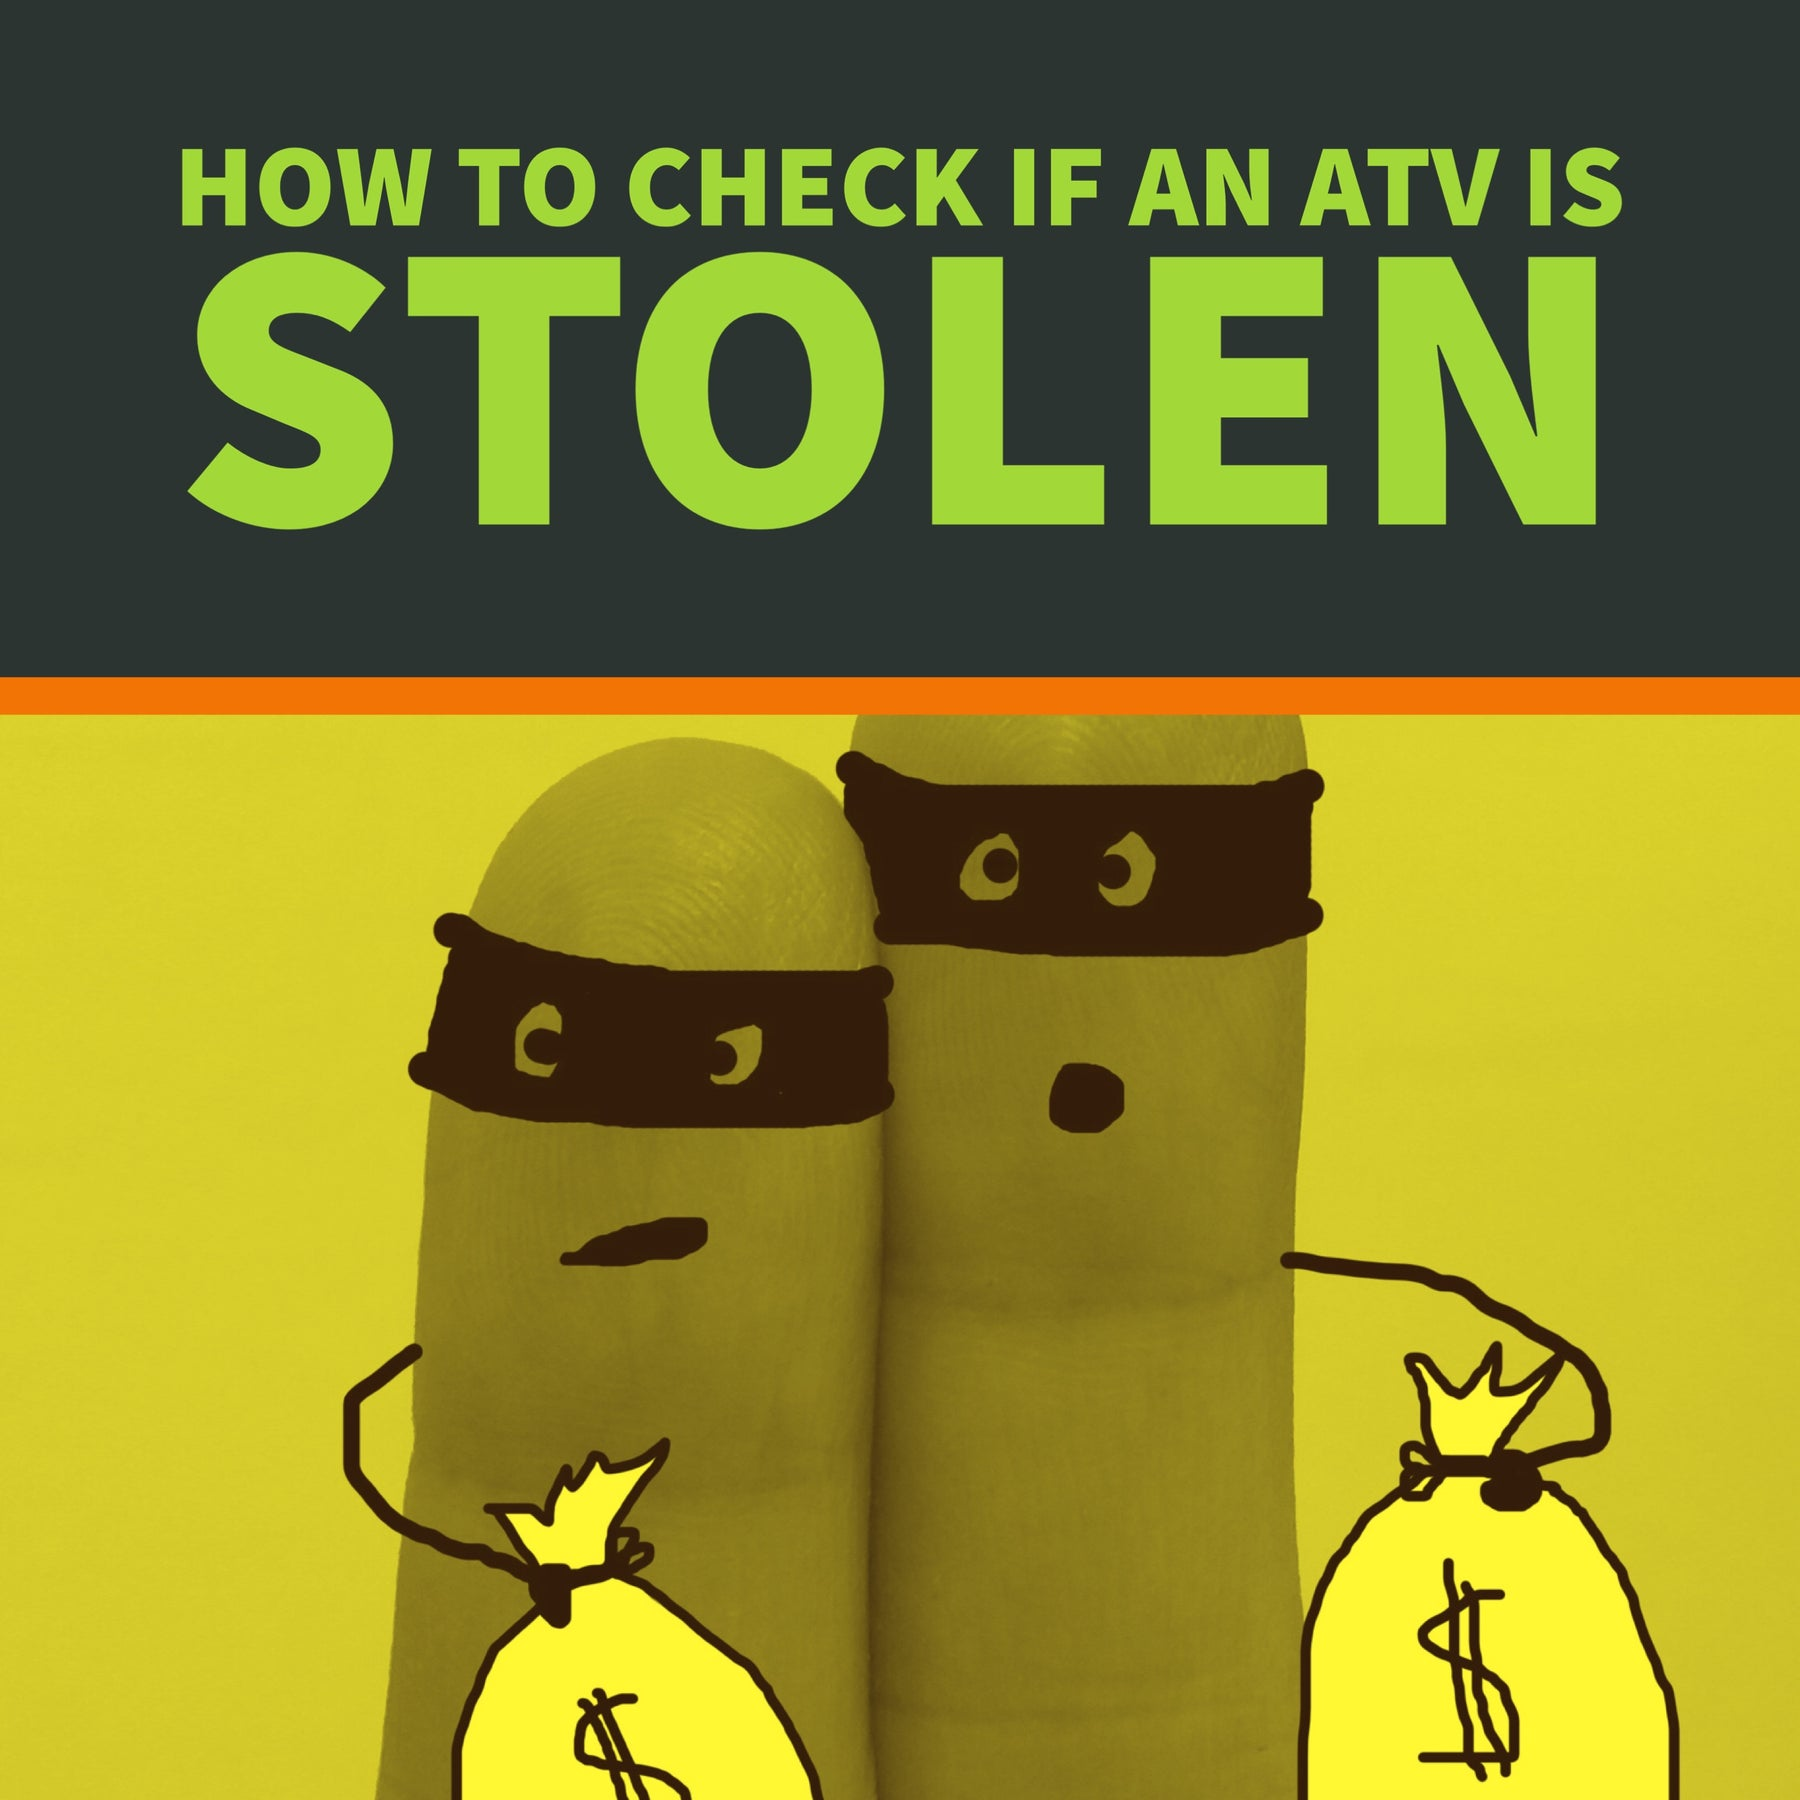 How To Check If An Atv Is Stolen Scooters Powersports Kazuma Parts Center Atvs Chinese Wiring Diagrams Not Buy A